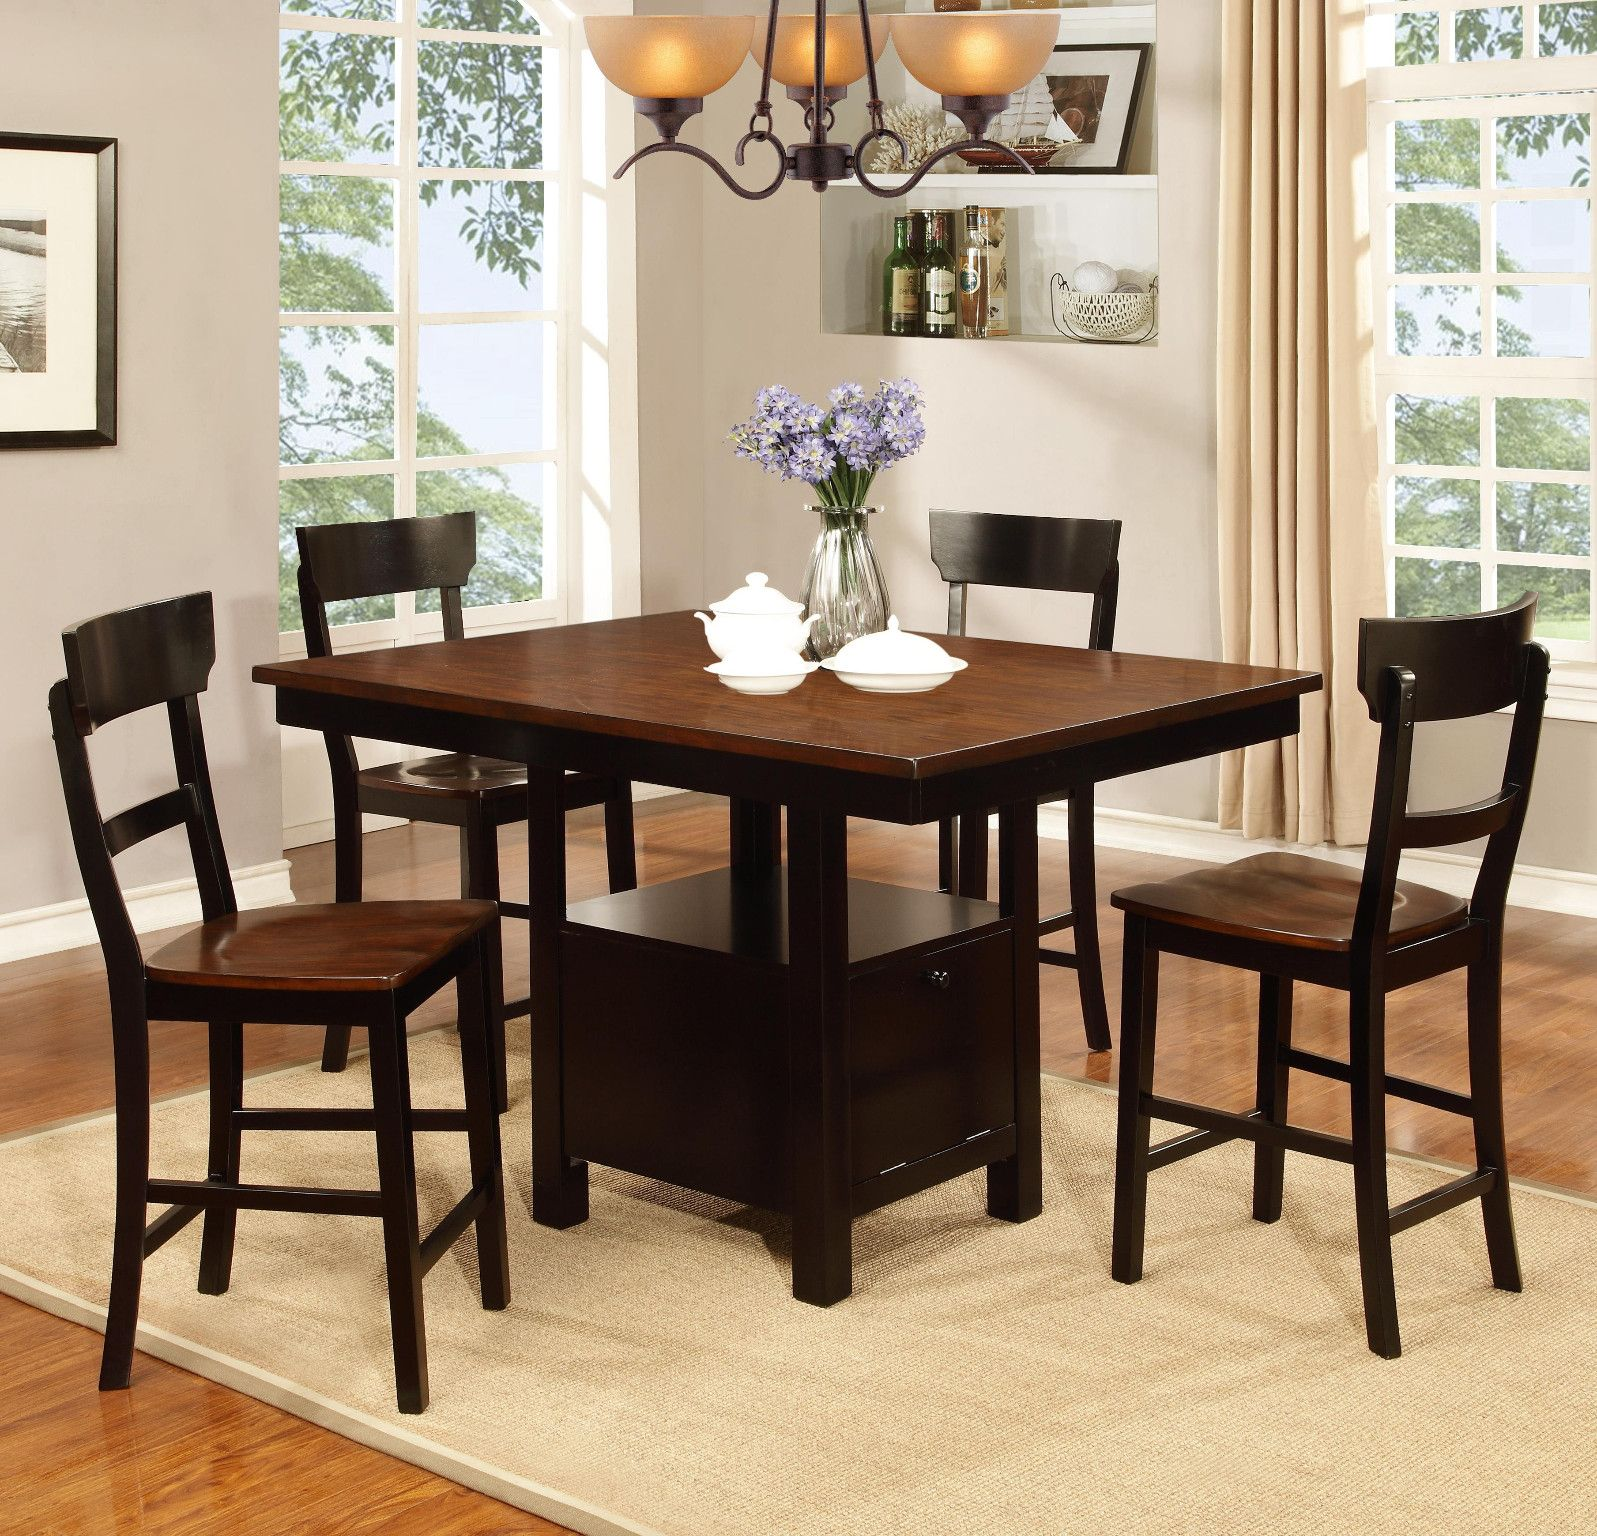 Woodbridge Counter Height Table And 4 Chairs Oak Black Finish By Lifestyle 44900 54L